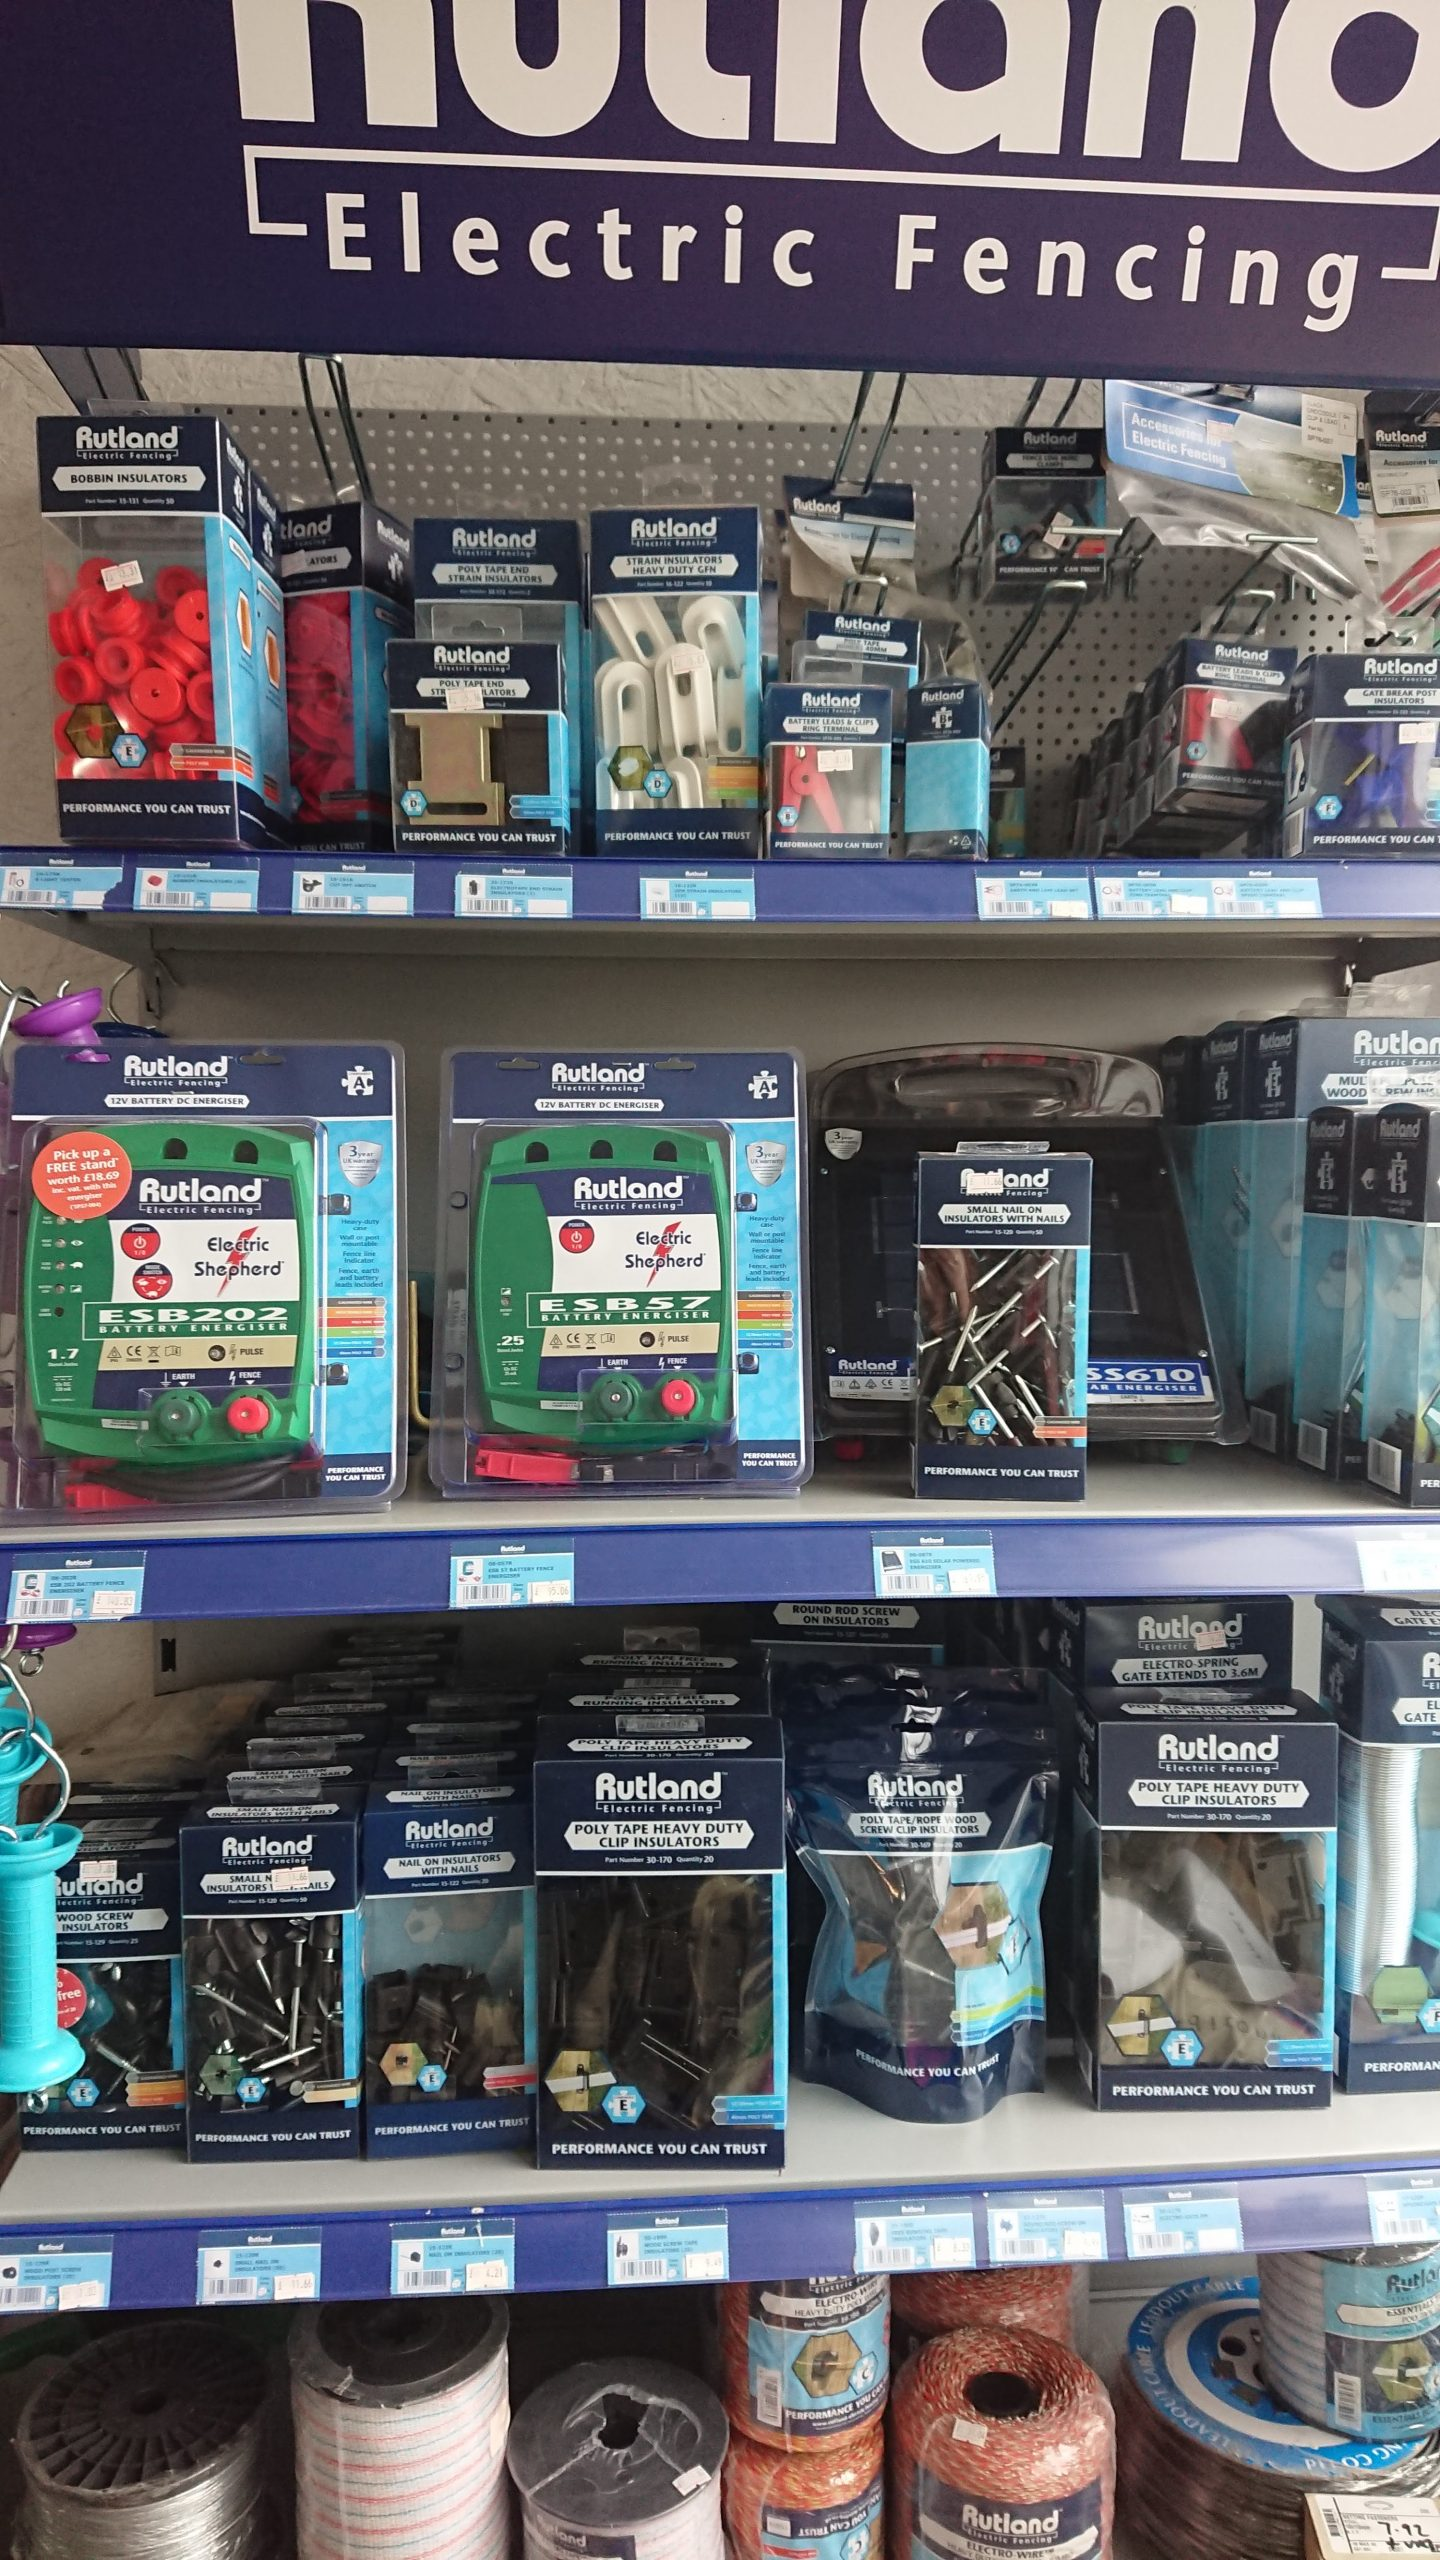 Display of Rutland Electric Fencing Products